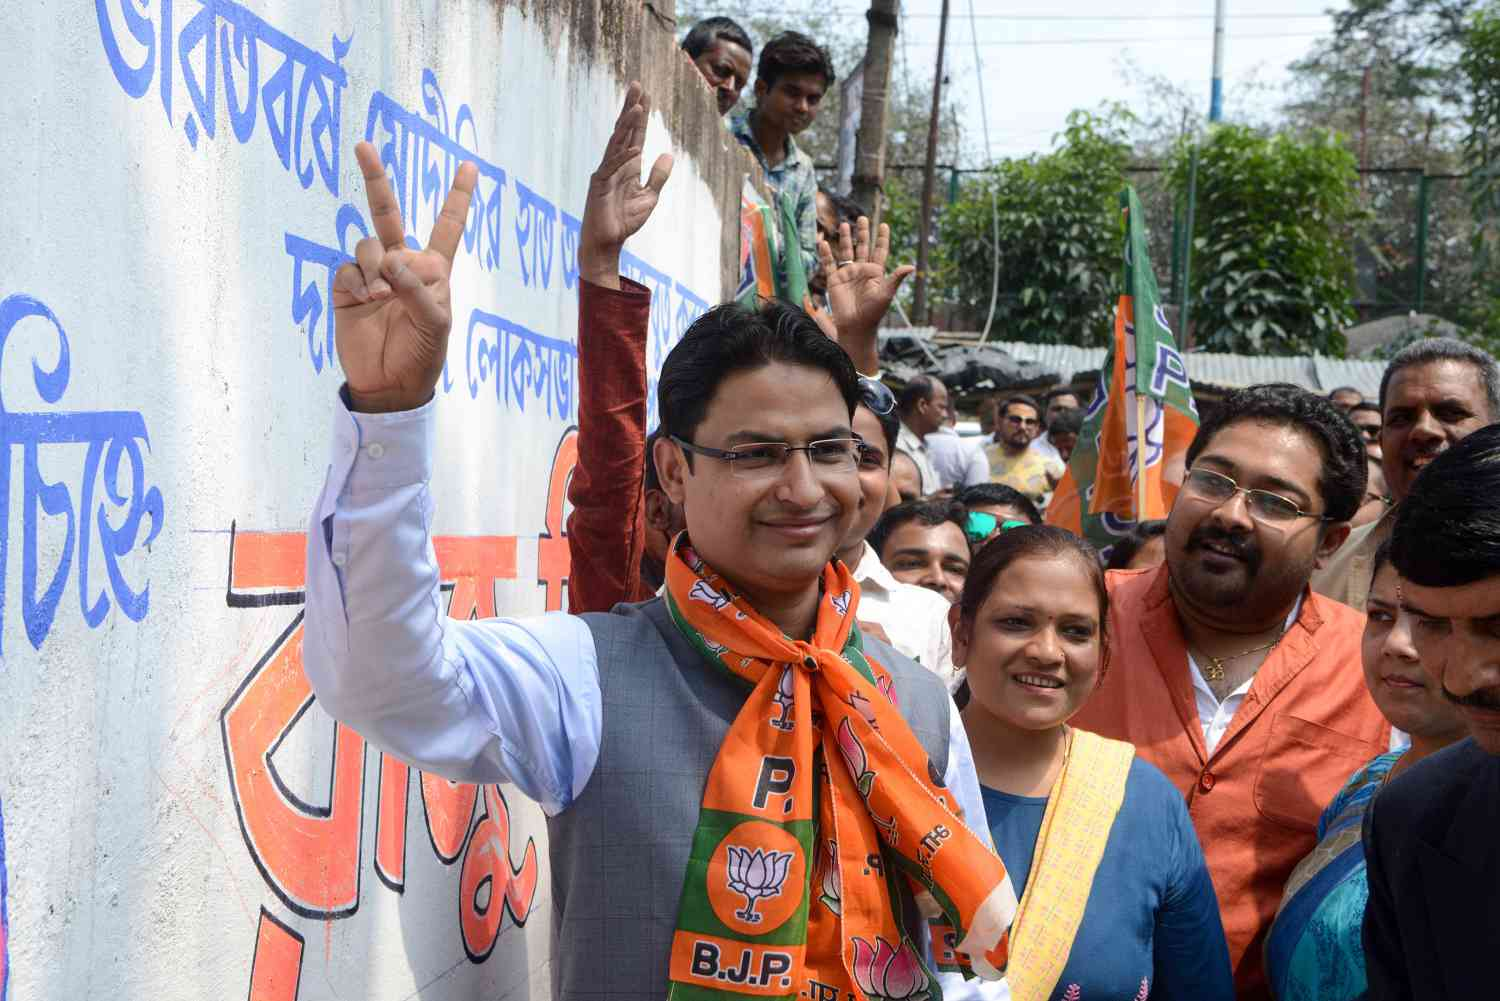 Raju Bista, the BJP candidate from Darjeeling, West Bengal, takes part in an election campaign in Siliguri, on March 28, 2019. (Photo credit: AFP).